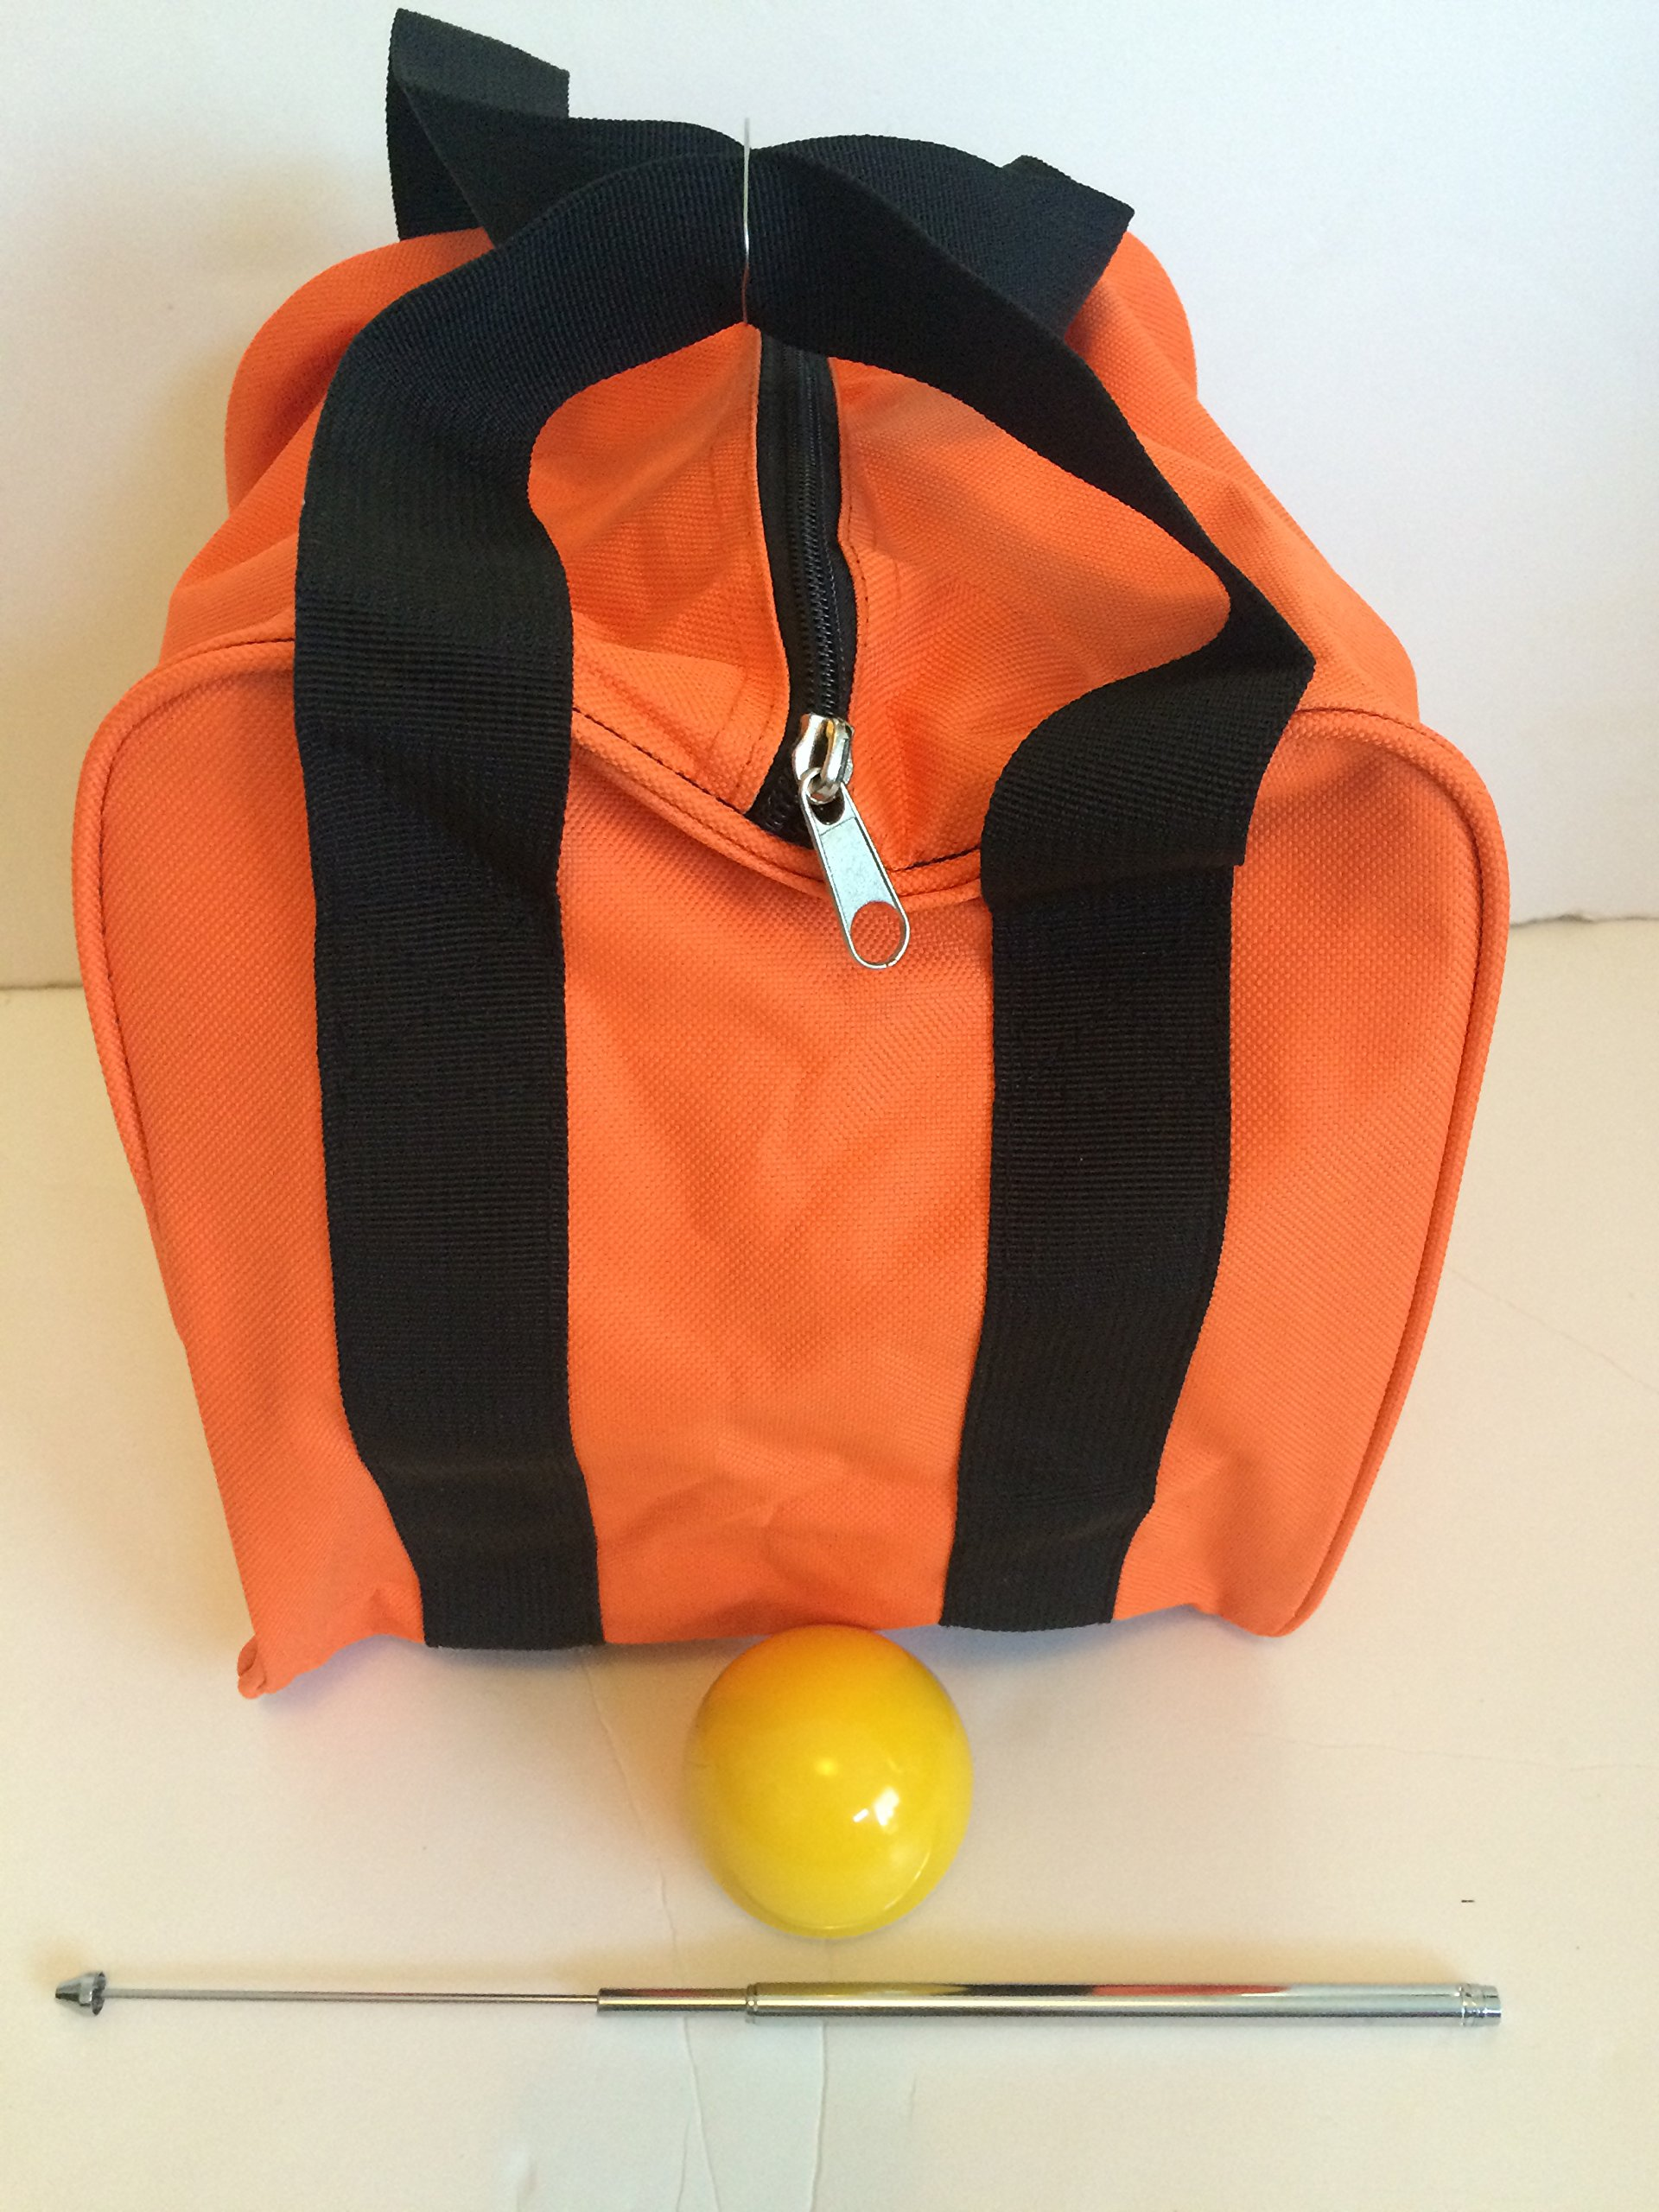 Unique Bocce Accessories Package - Extra Heavy Duty Nylon Bocce Bag (Orange with Black Handles), Yellow pallina, Extendable Measuring Device